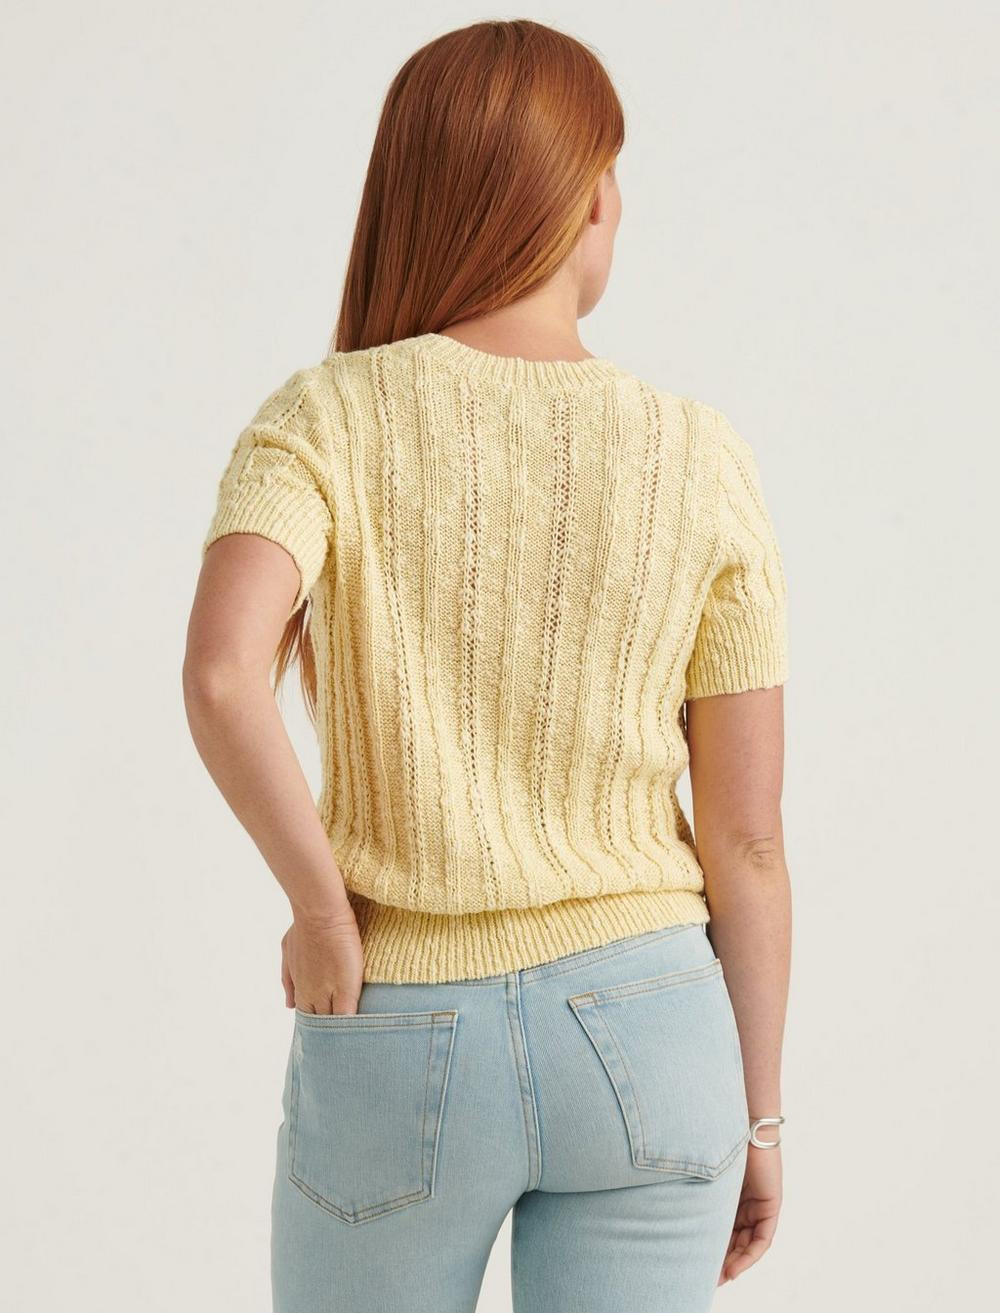 LIGHTWEIGHT SHORT SLEEVE CABLE SWEATER, image 4